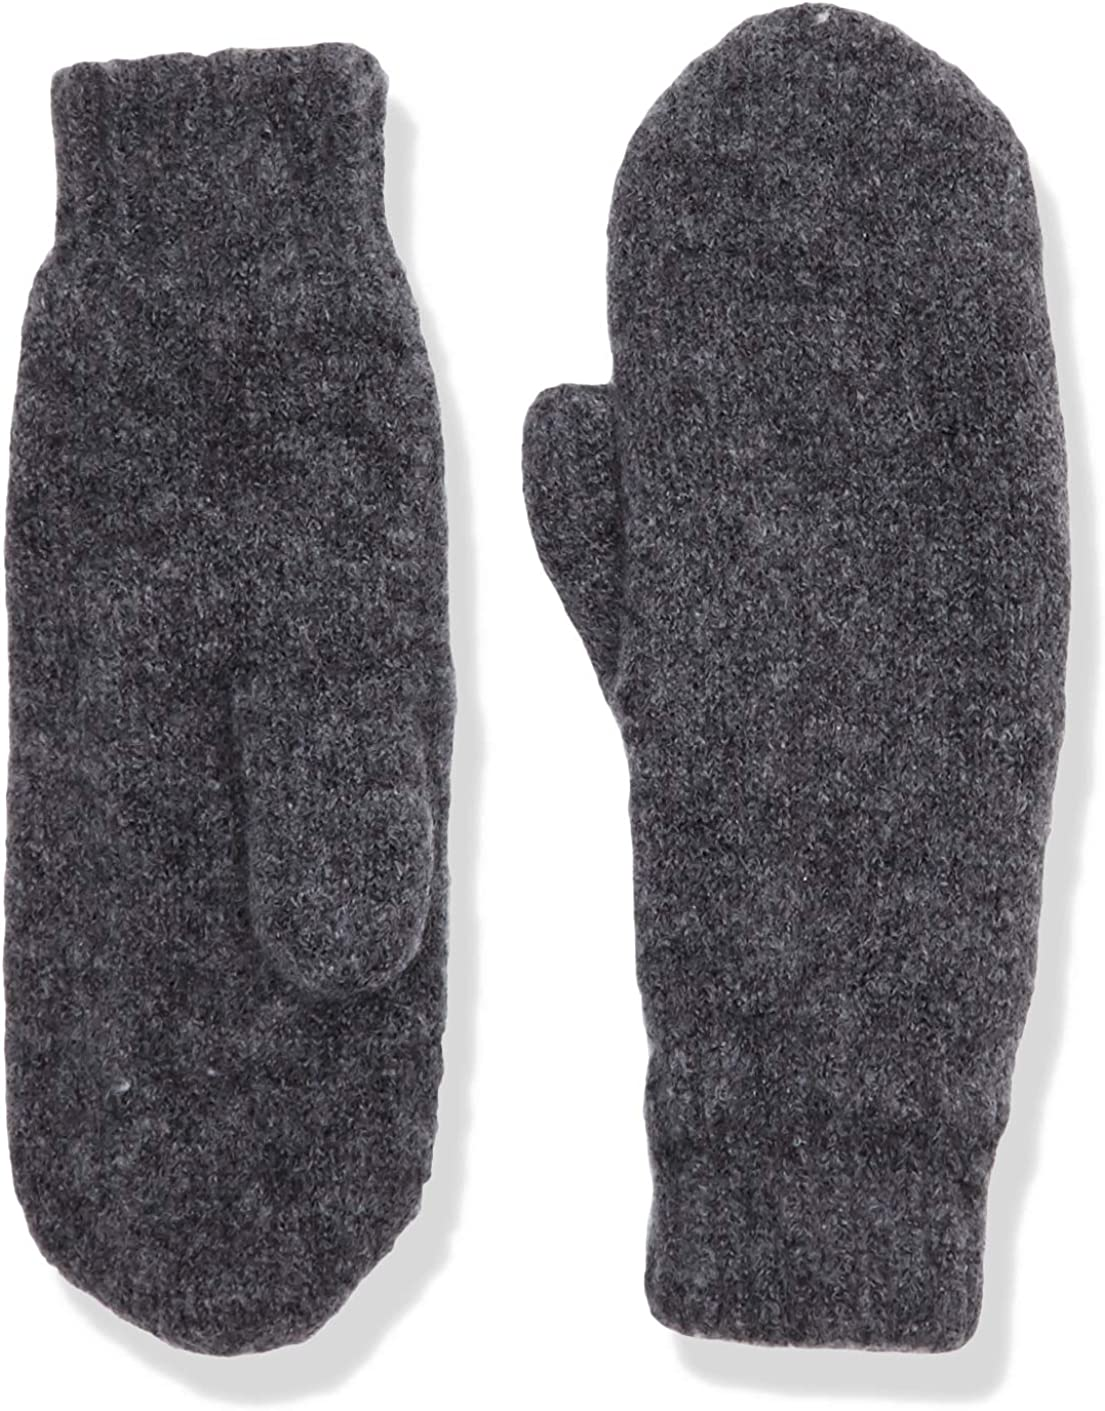 PIECES Pckimmie Wool Mittens Noos Guanti Donna